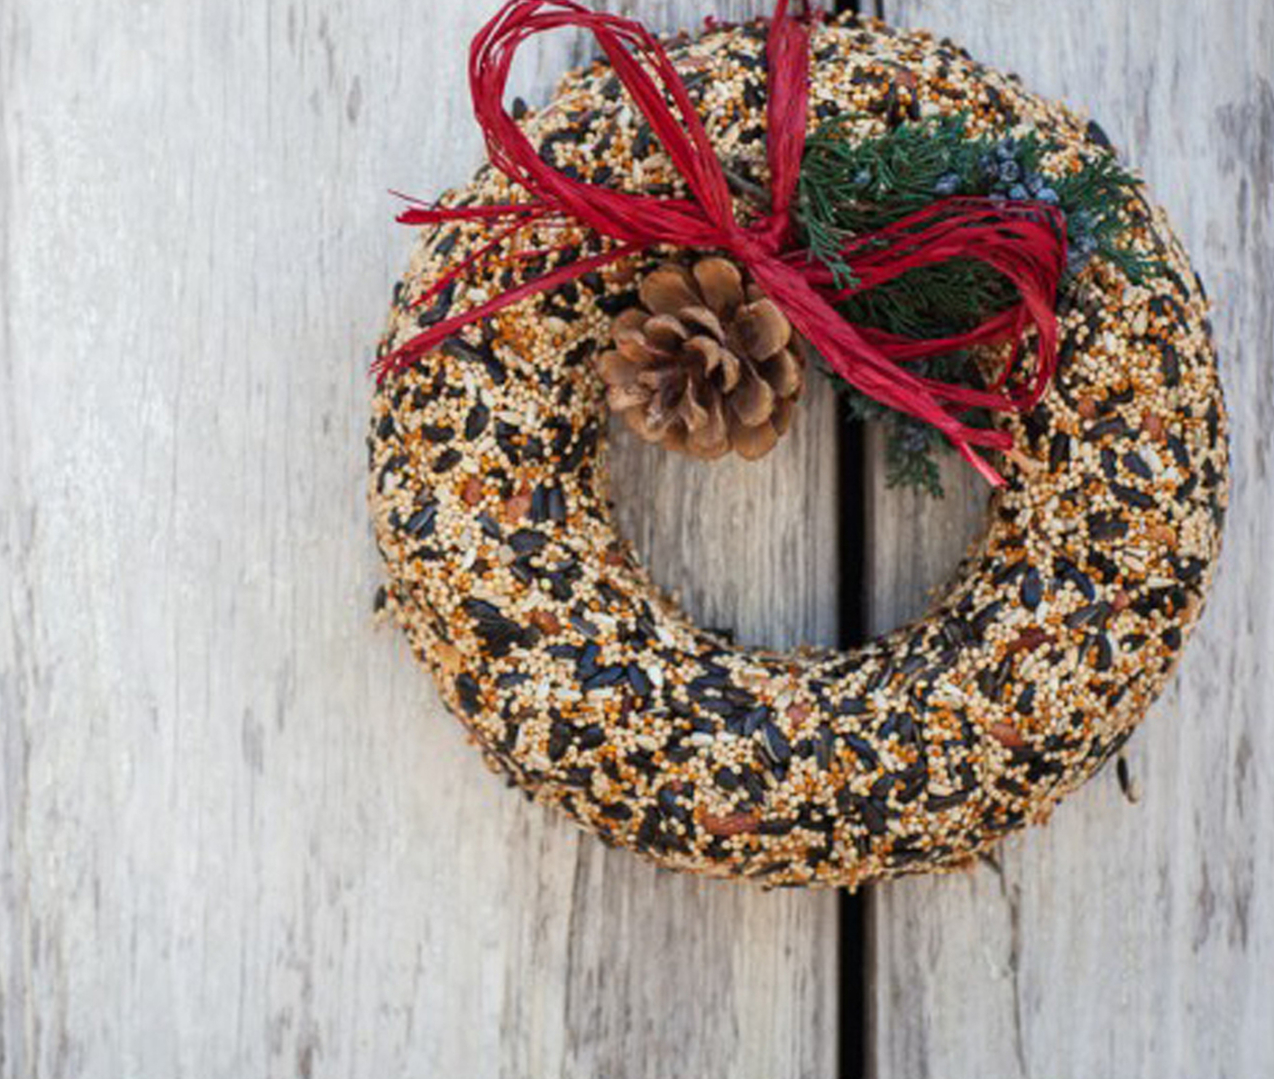 Mr. Bird Bird Seed Wreaths and Houses